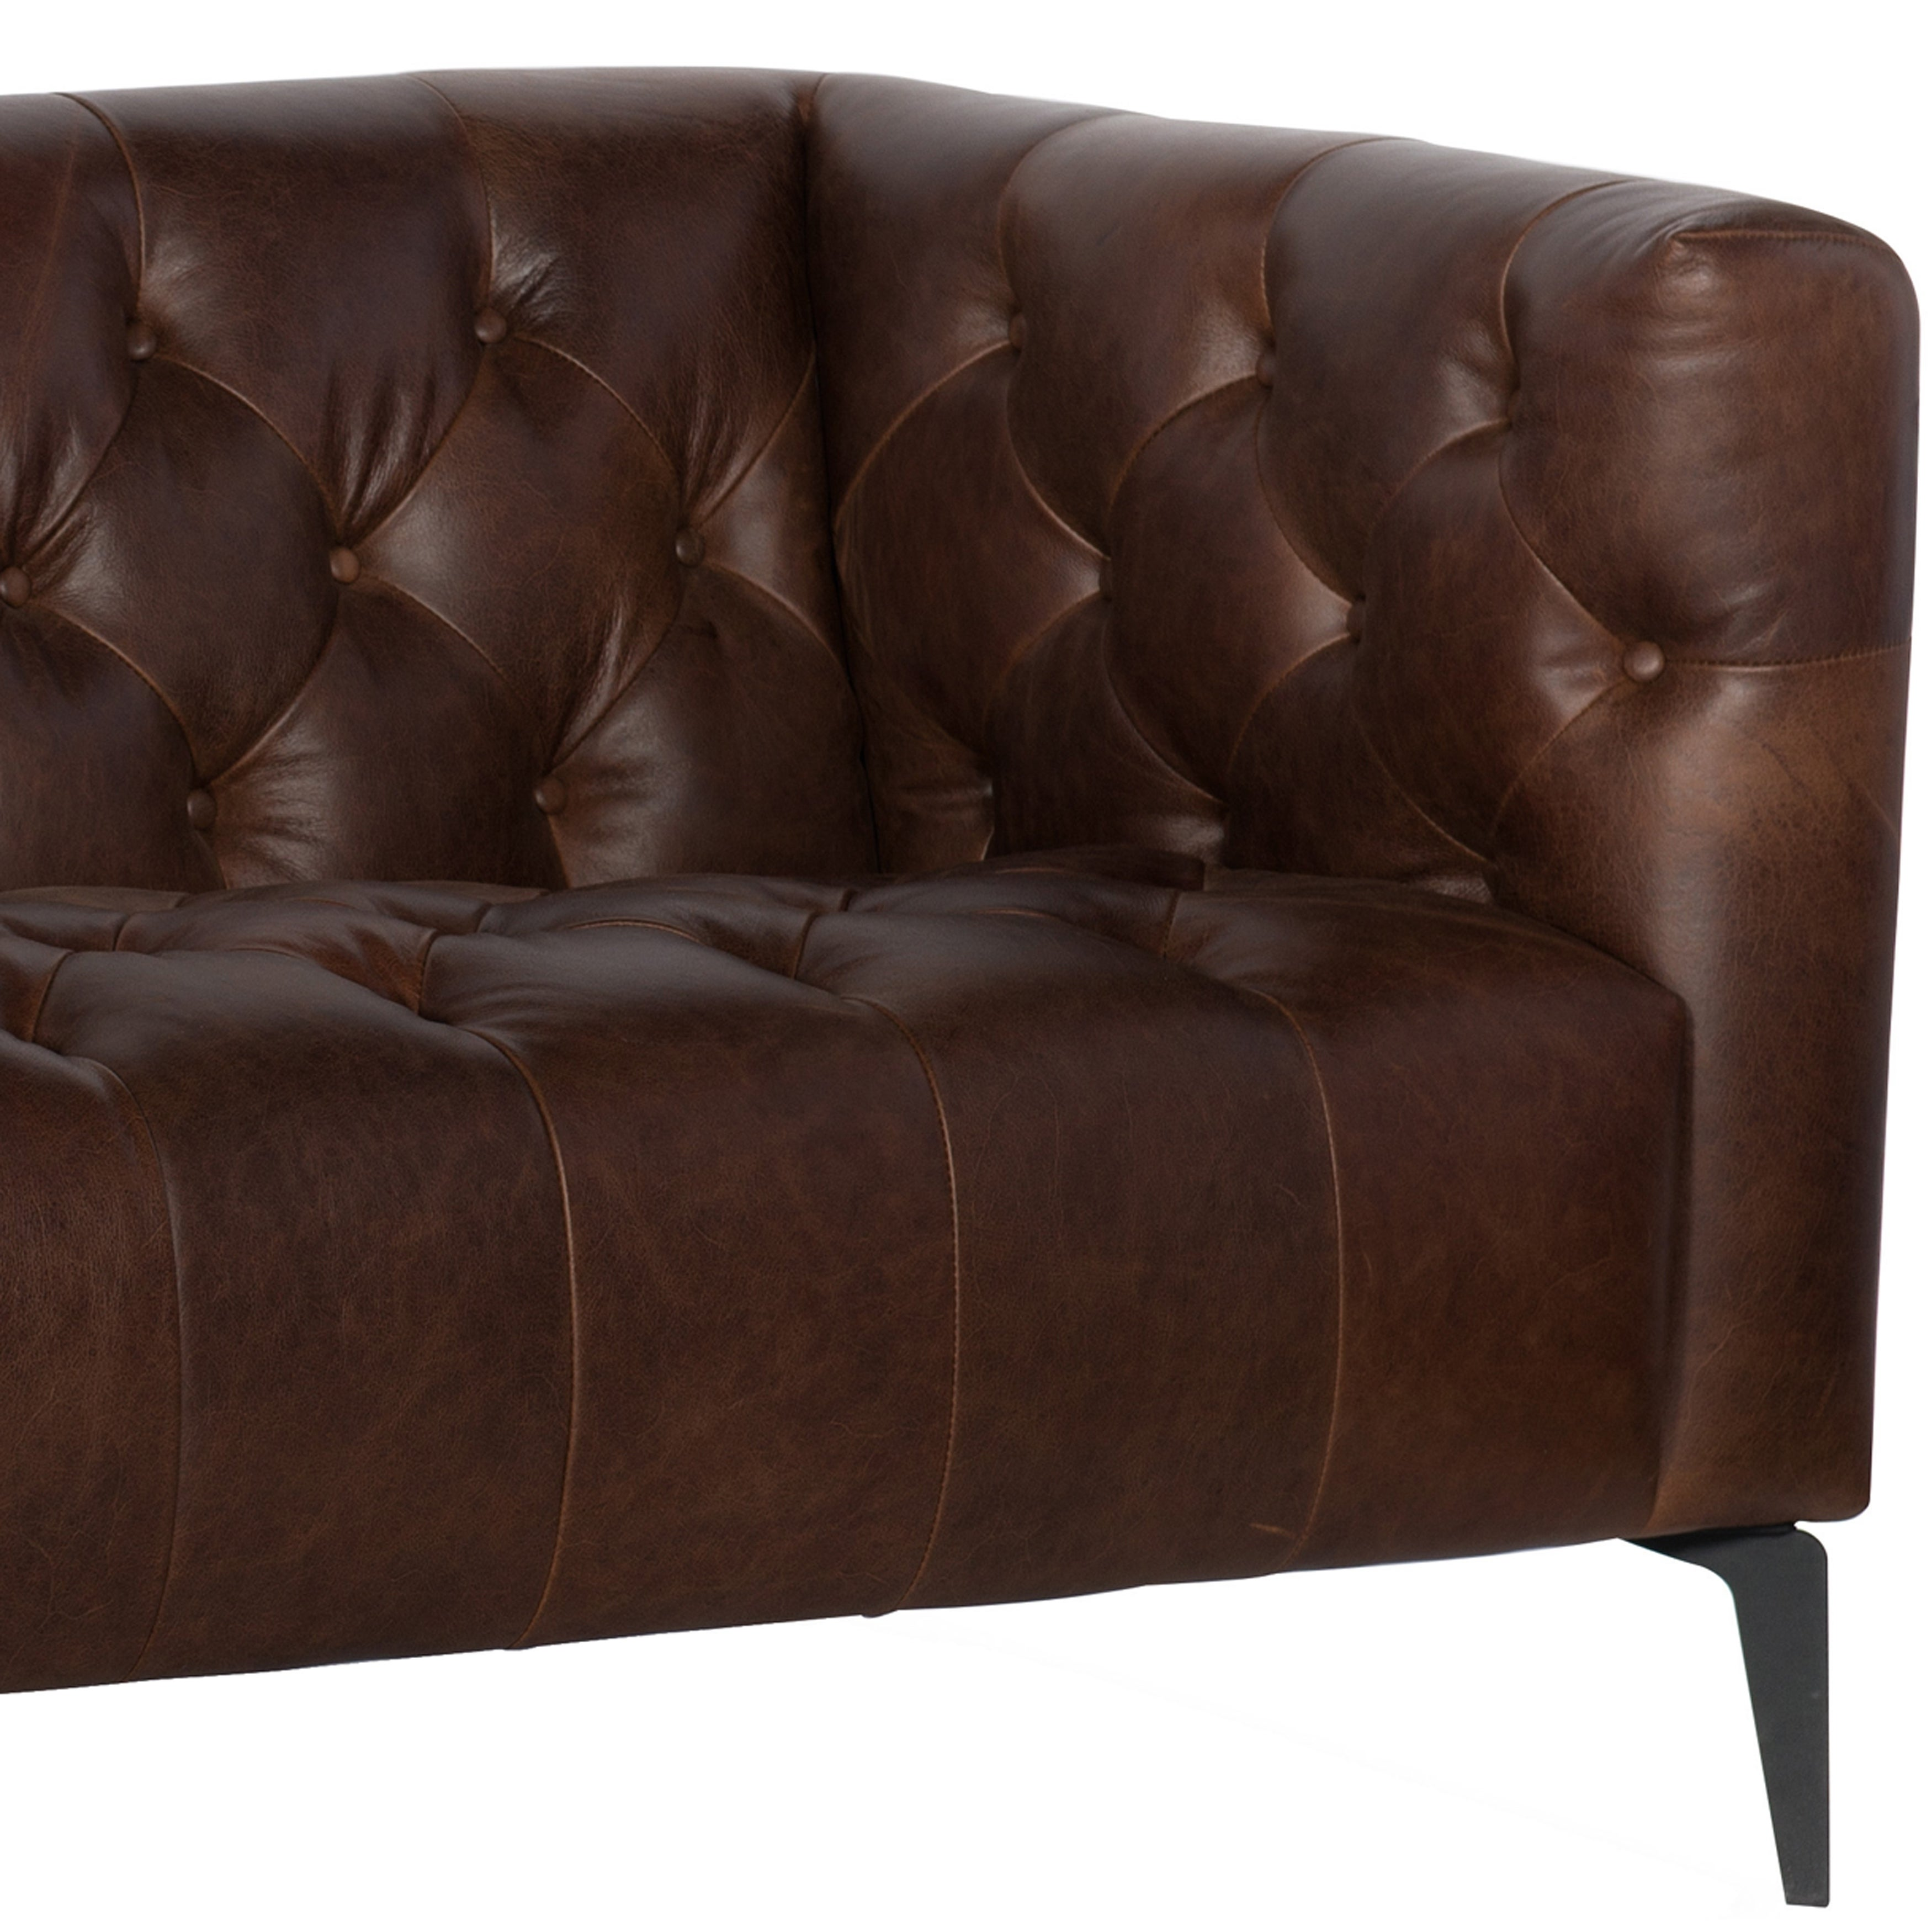 Wildon Distressed Brown Tufted Leather Chesterfield Sofa And Two Chairs